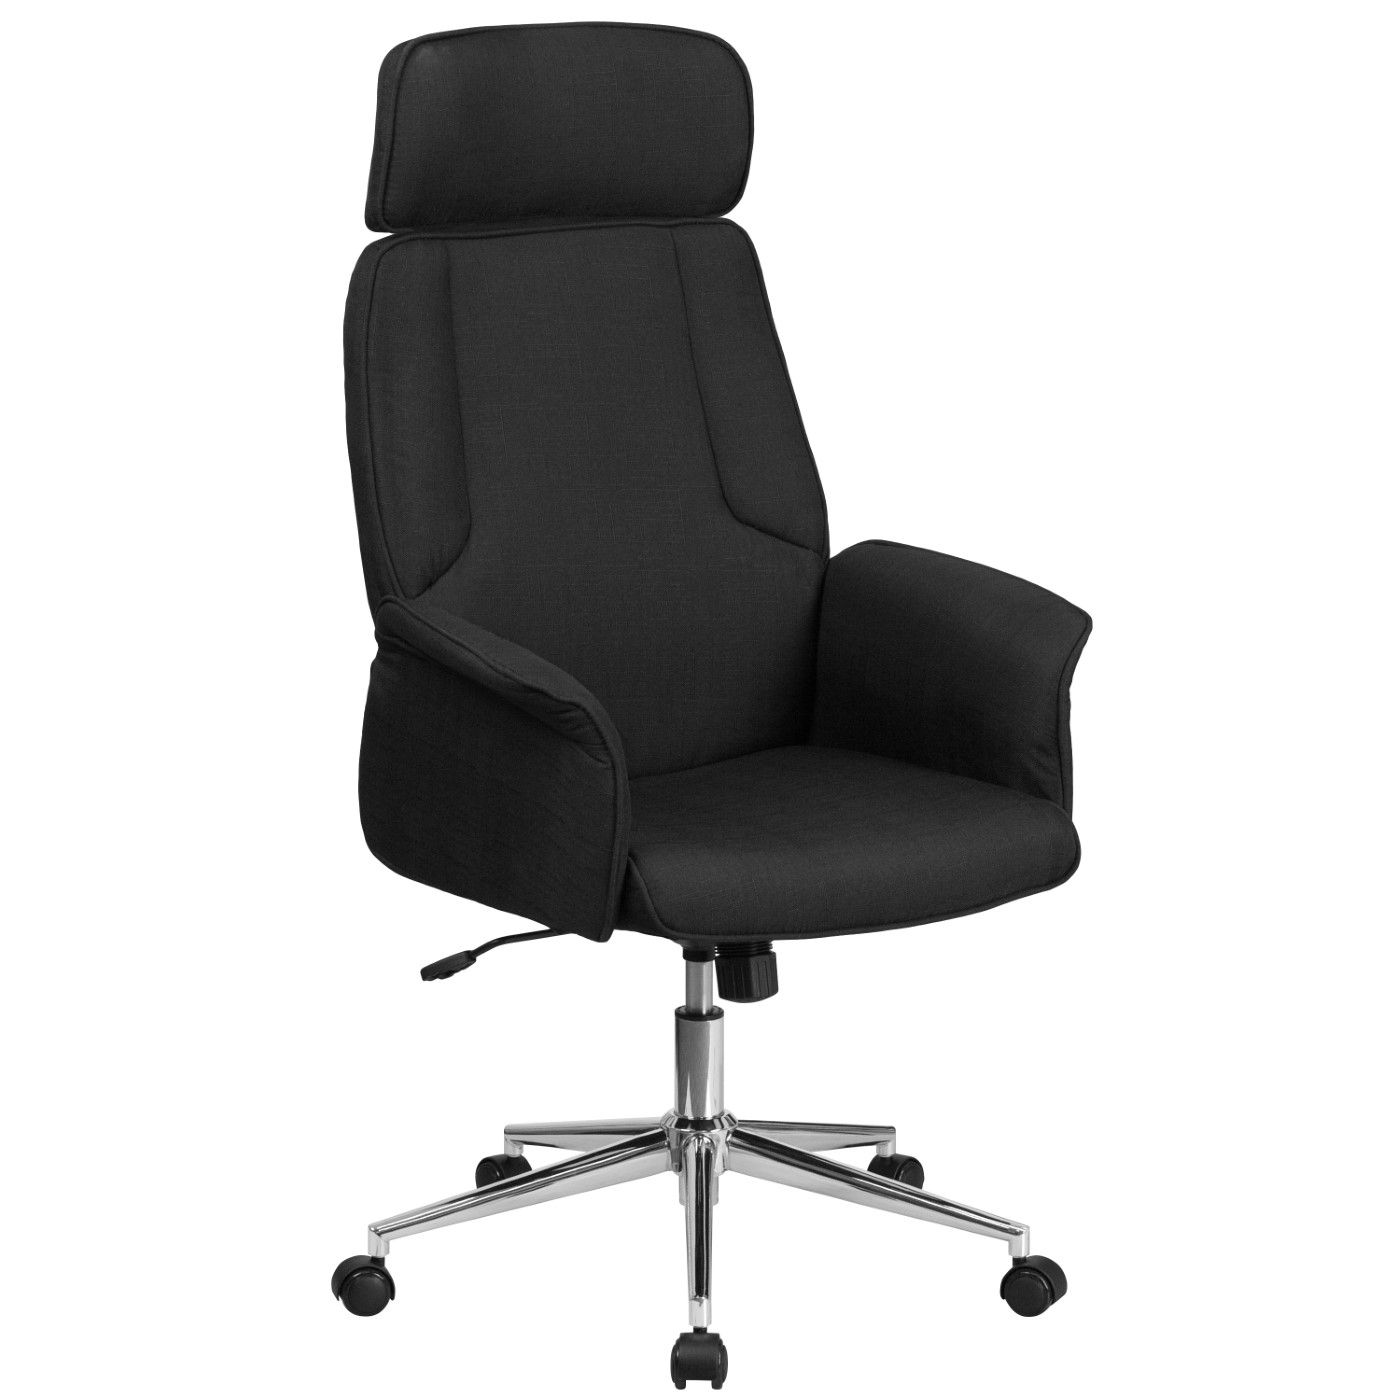 High Back Black Fabric Executive Swivel Office Chair with Chrome Base and Fully Upholstered Arms